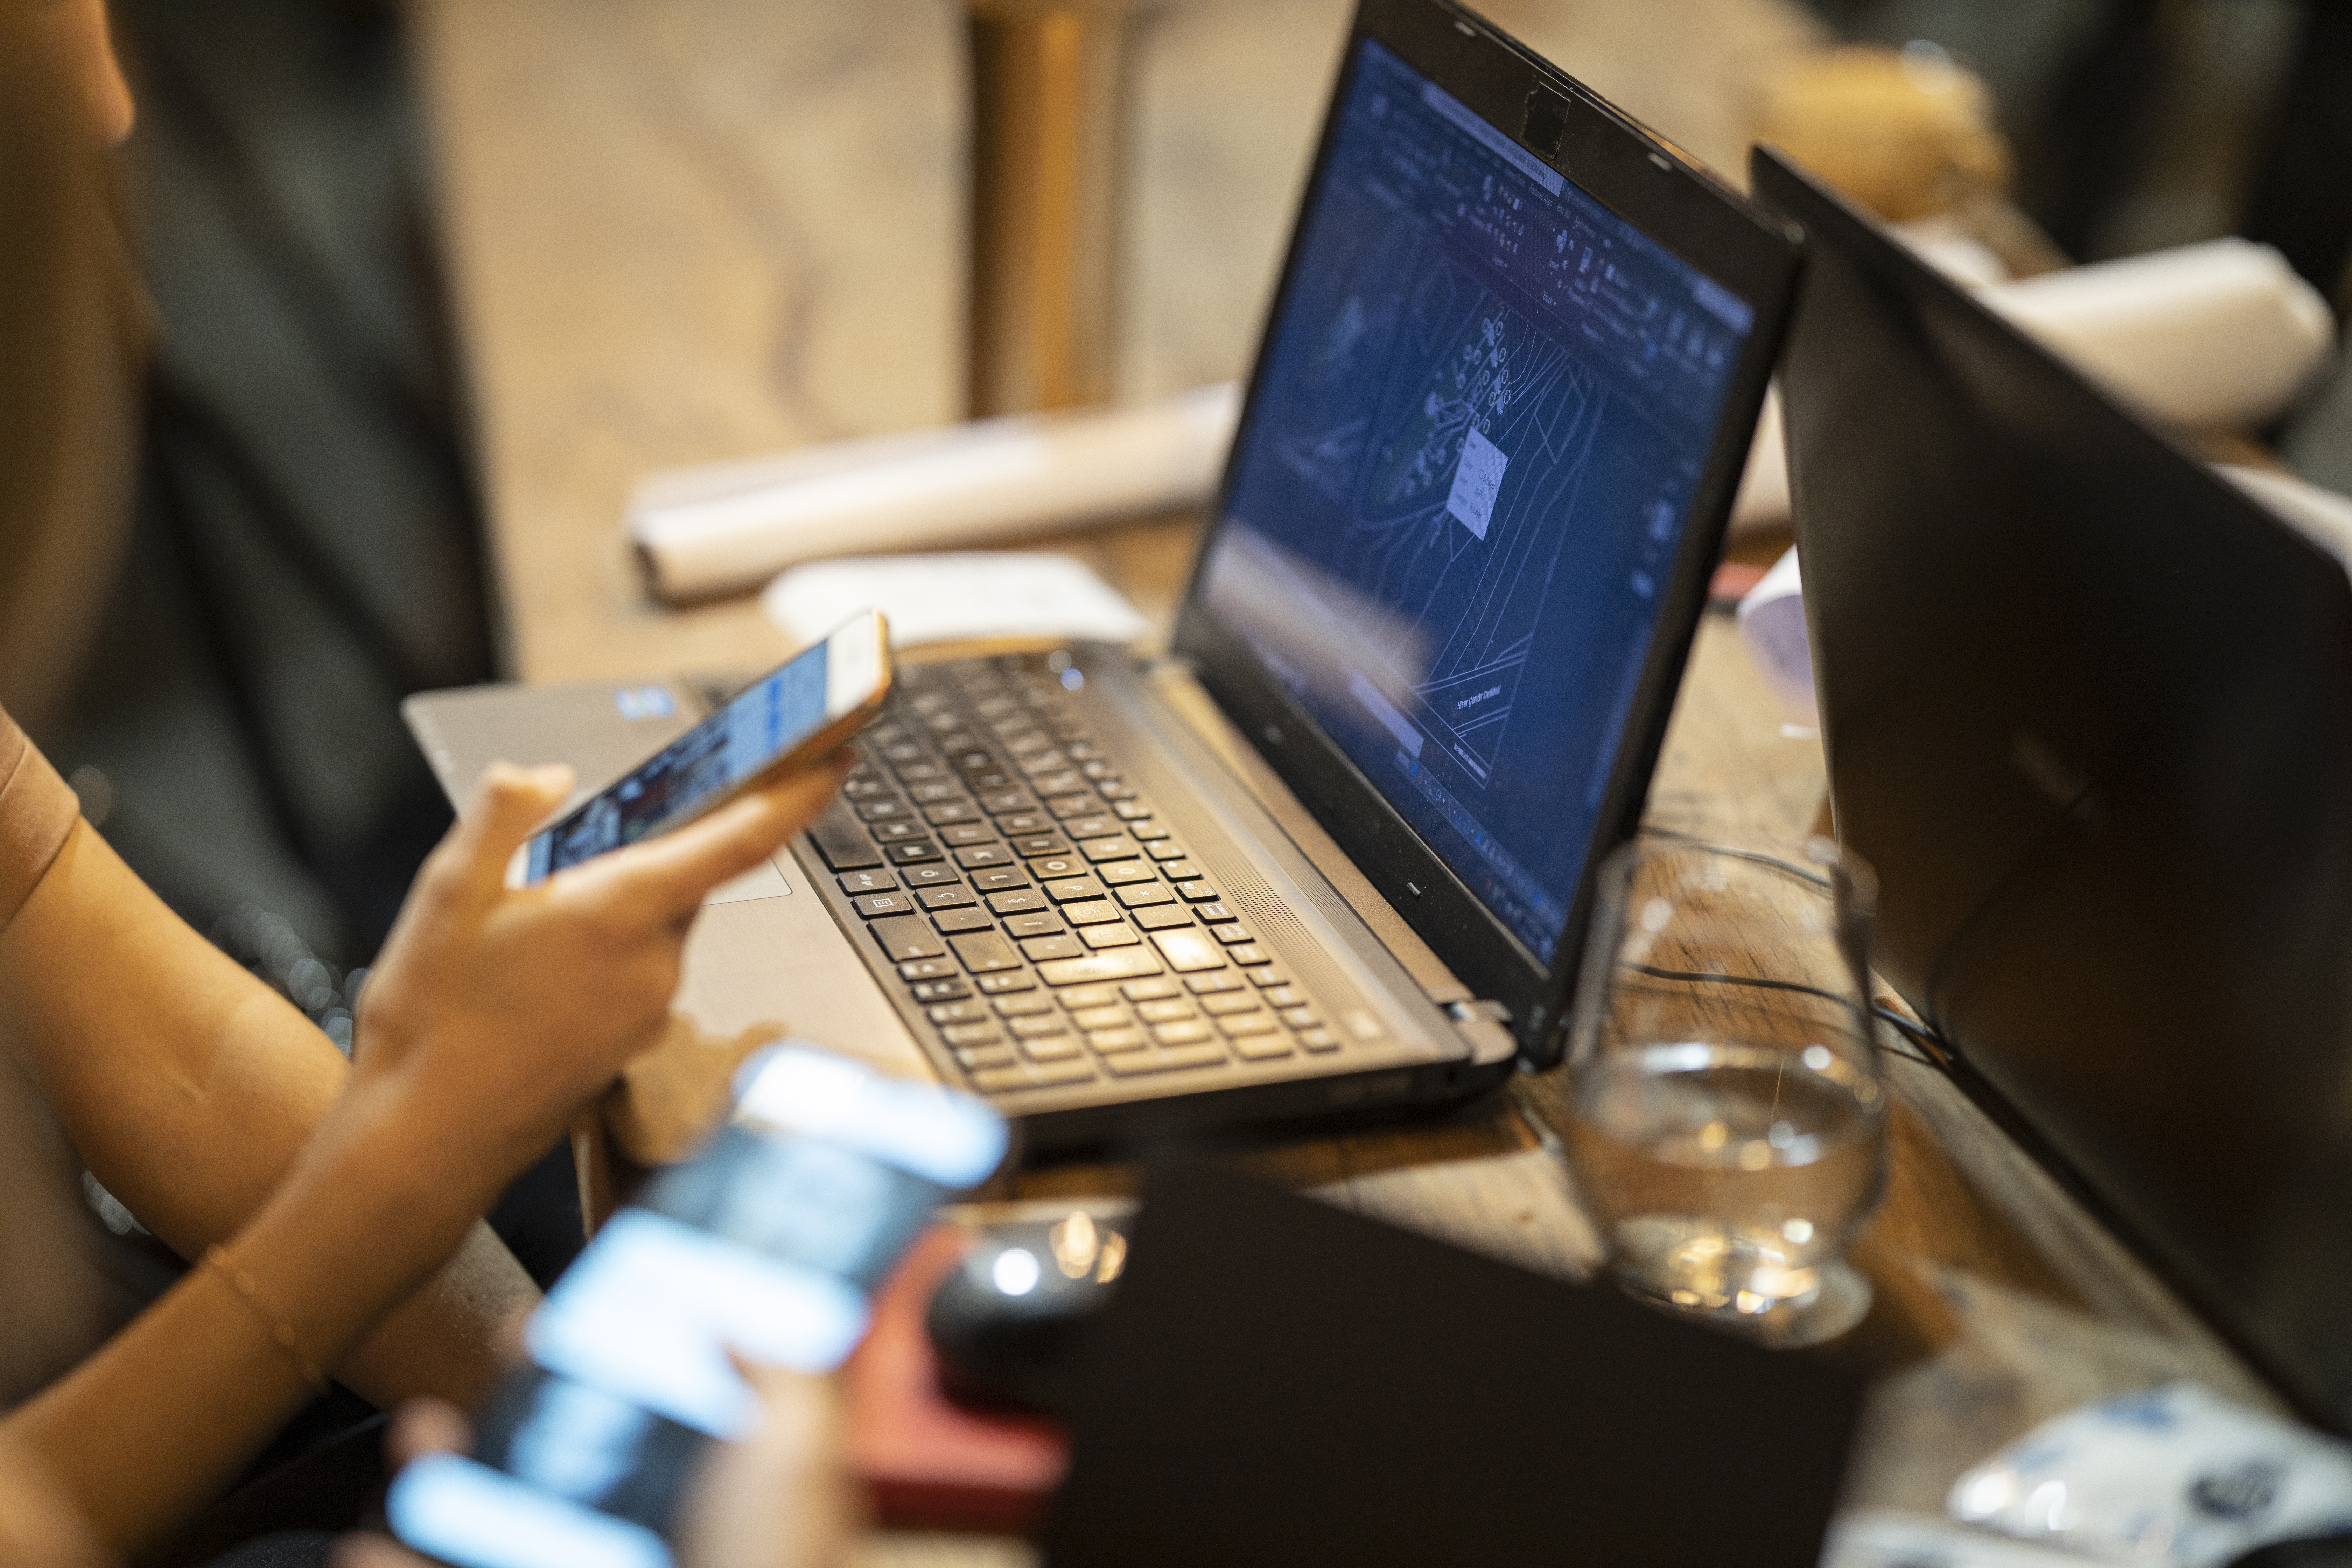 Photo Of Person In Front Of Laptop